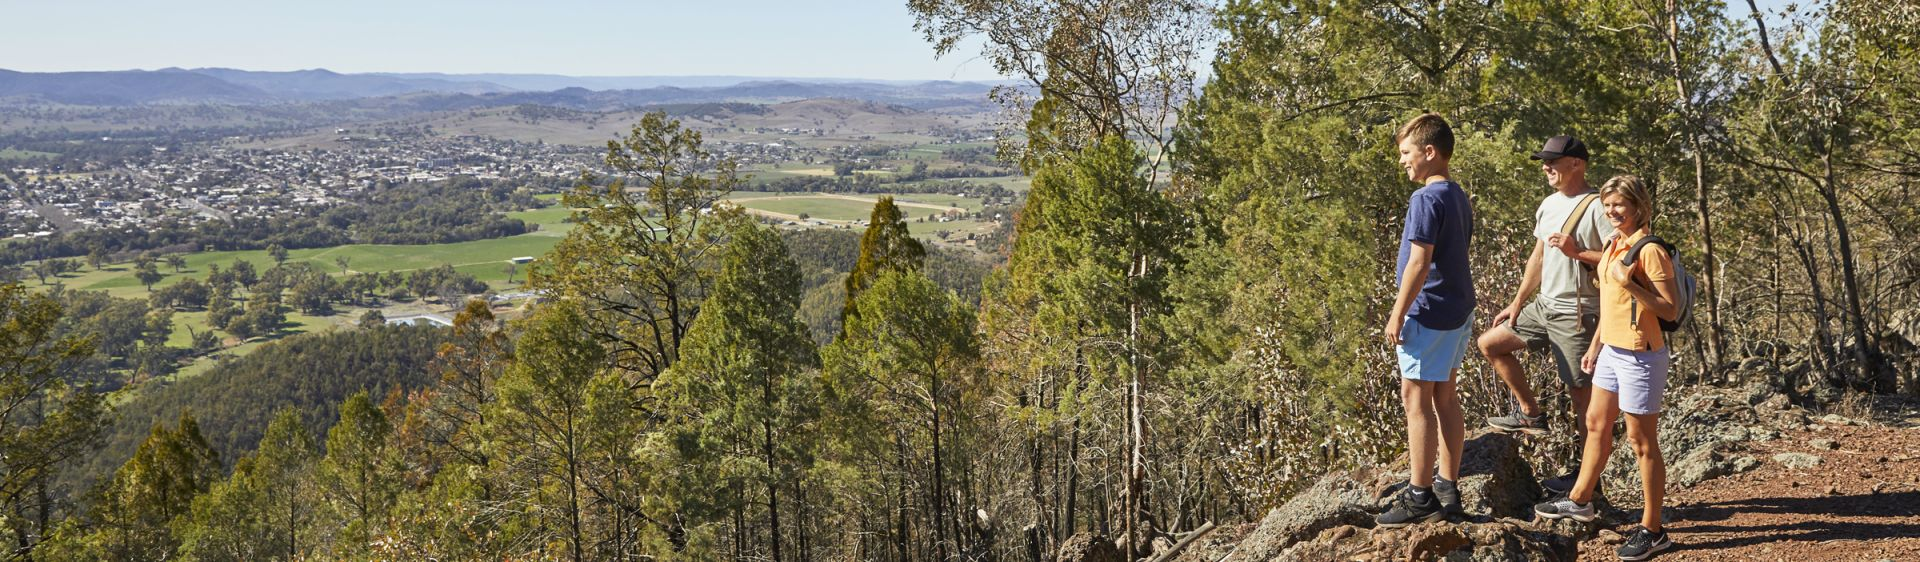 View of Wellington from Mount Arthur Reserve, near Dubbo, NSW